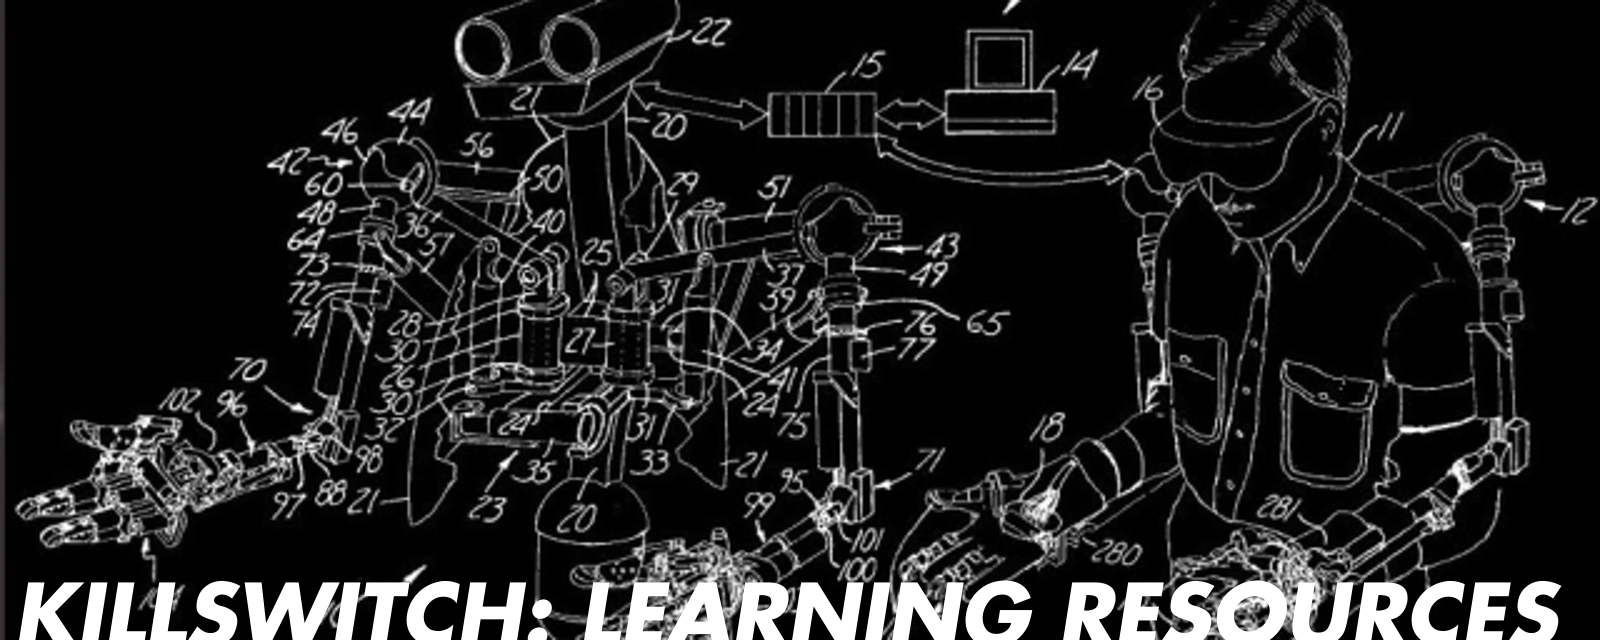 killswitch-learning-resources